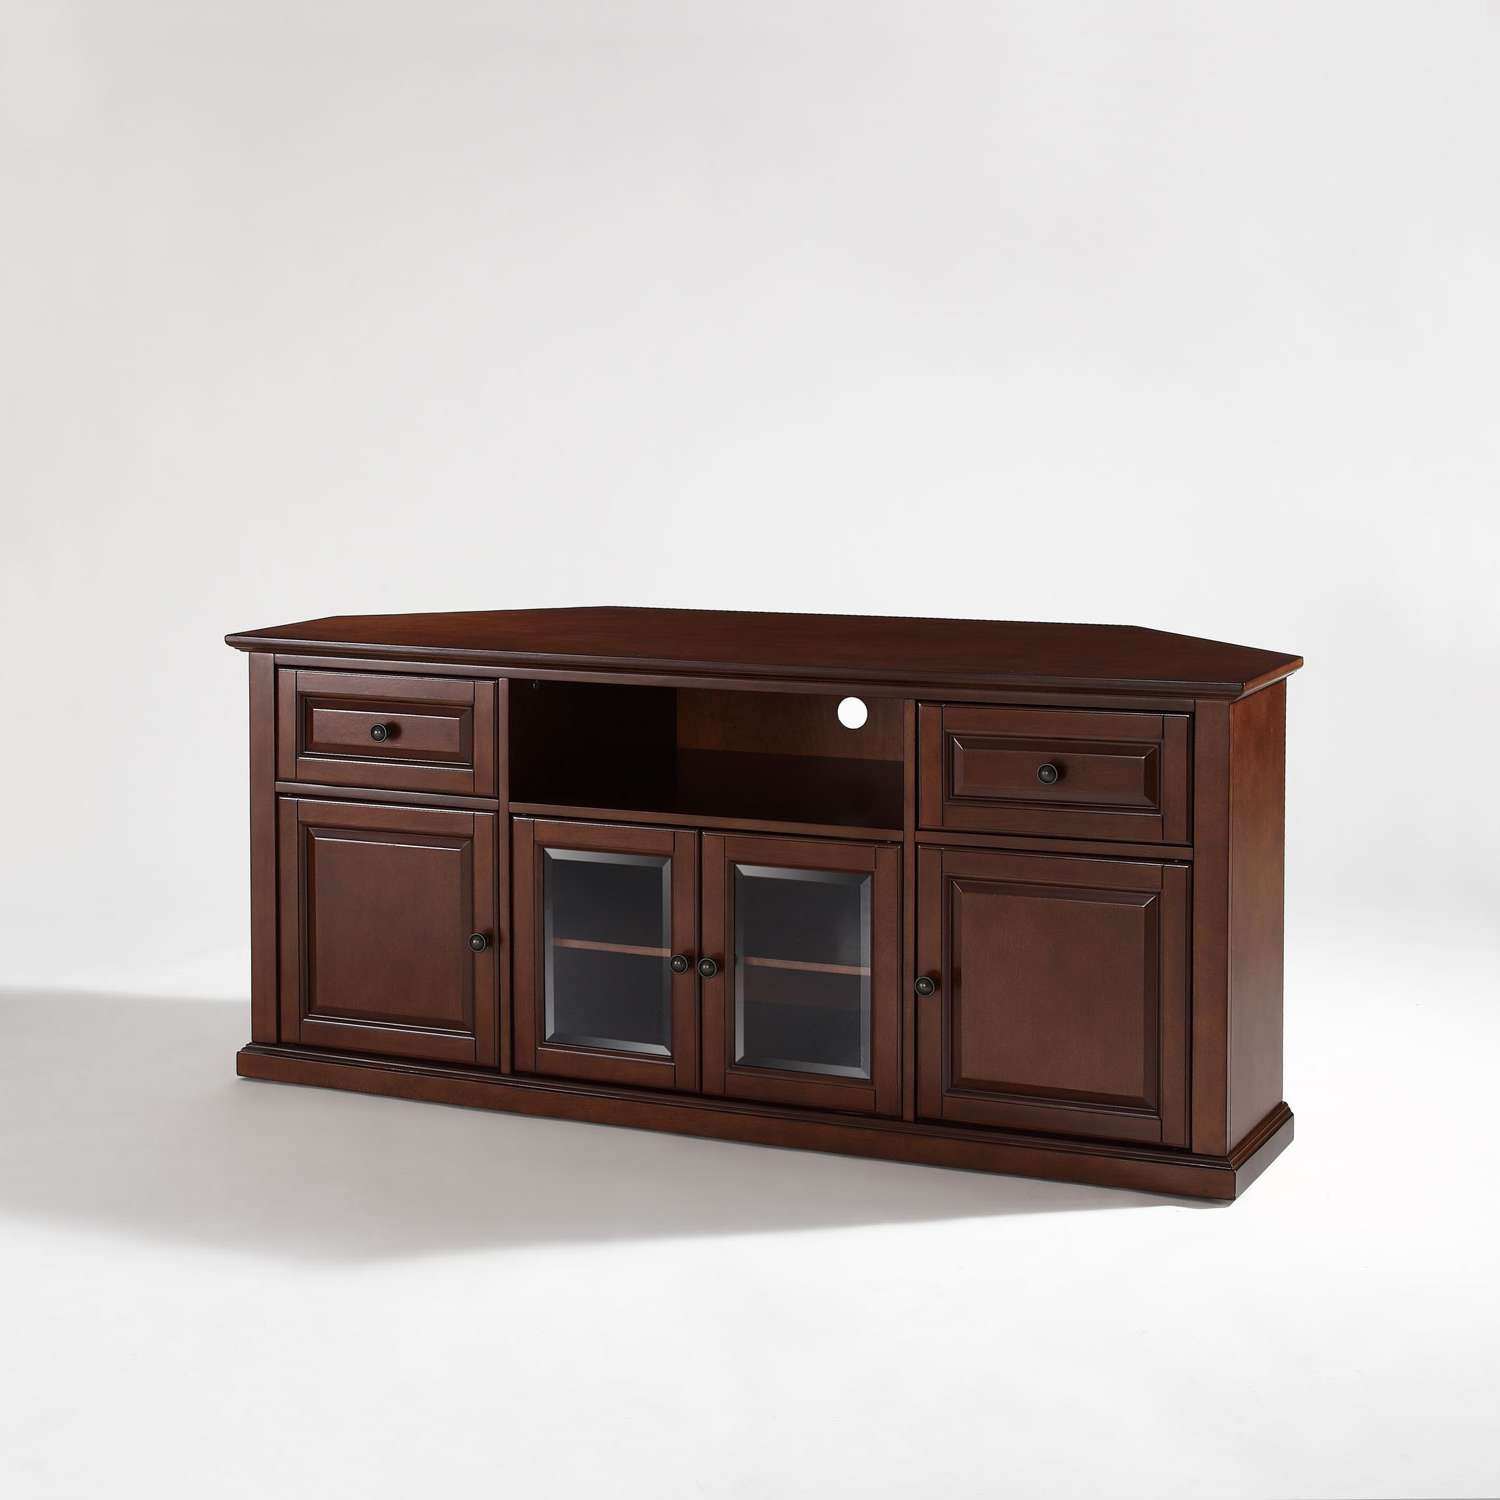 Small White Corner Tv Stand Stands Tall Standor Bedroom Trends For Tall Tv Cabinets Corner Unit (View 9 of 20)